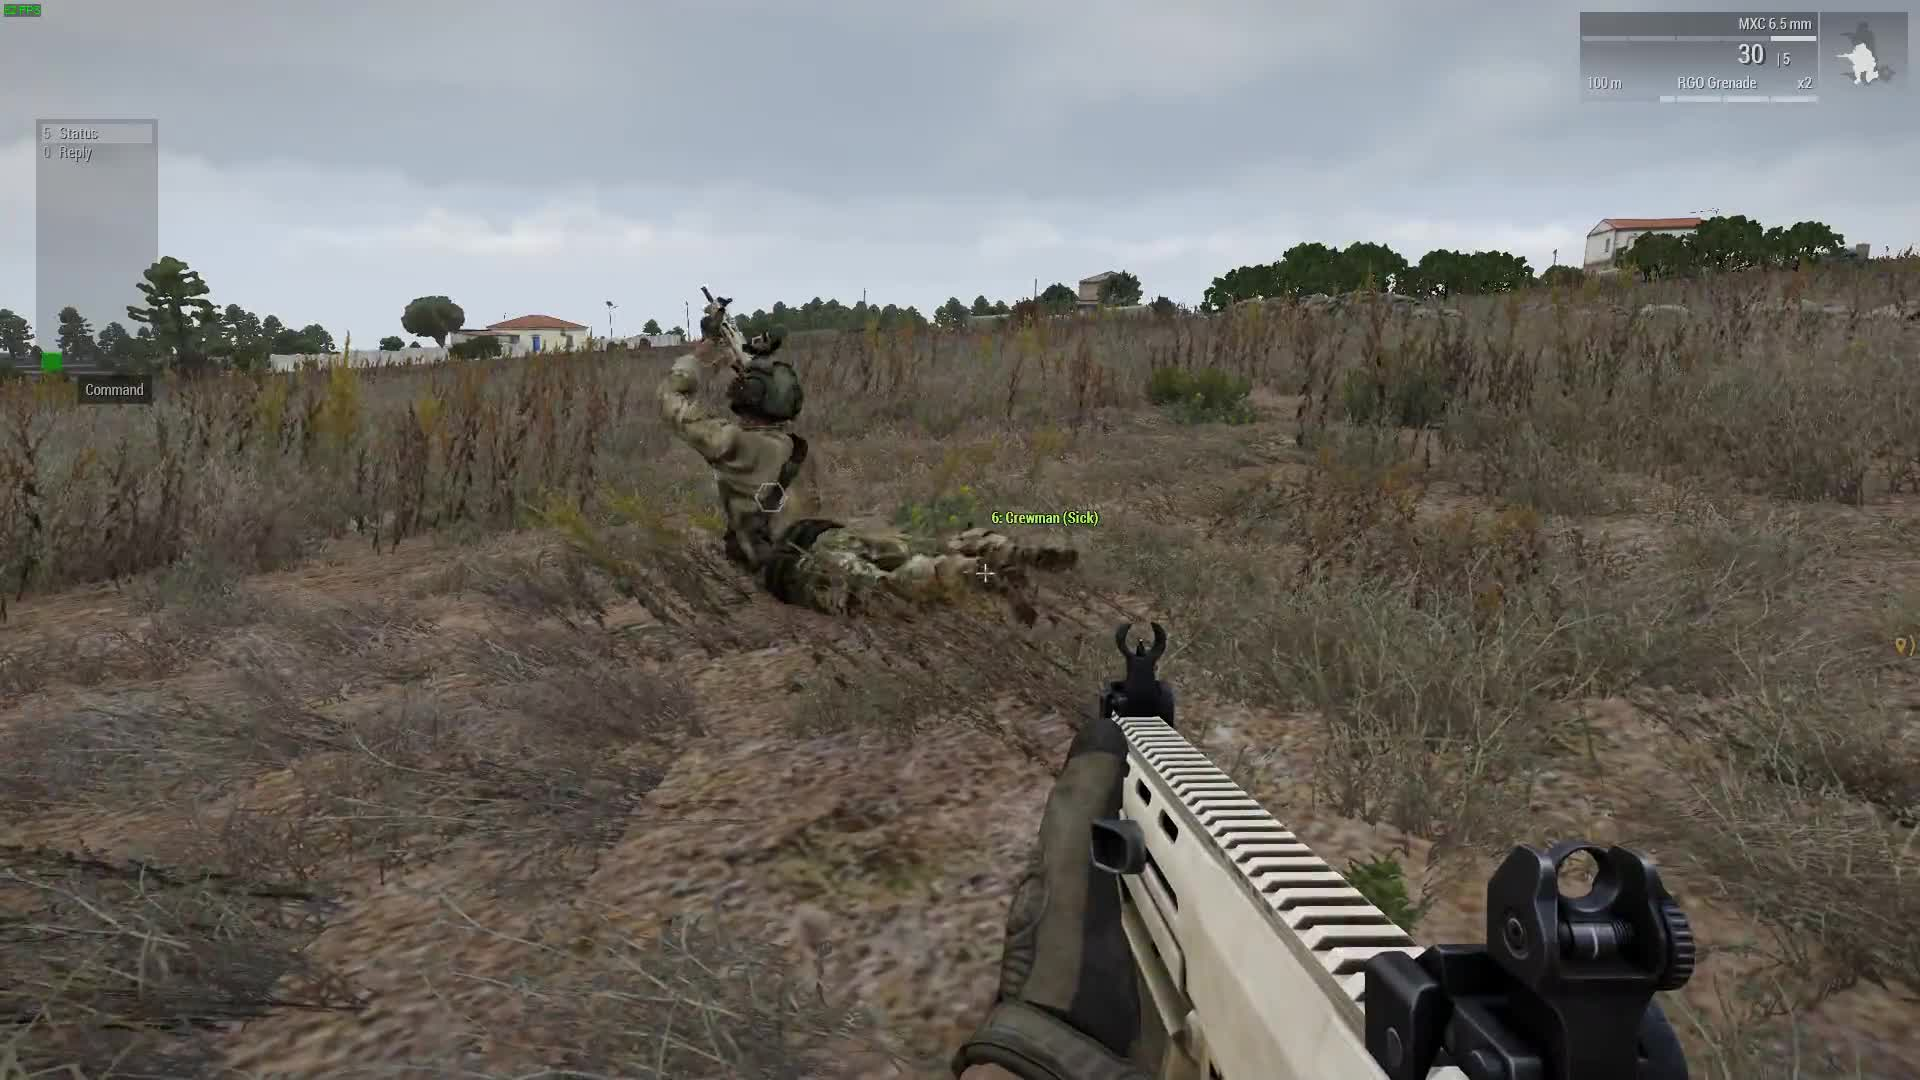 arma, arma 3, arma3, Sick Moves GIFs